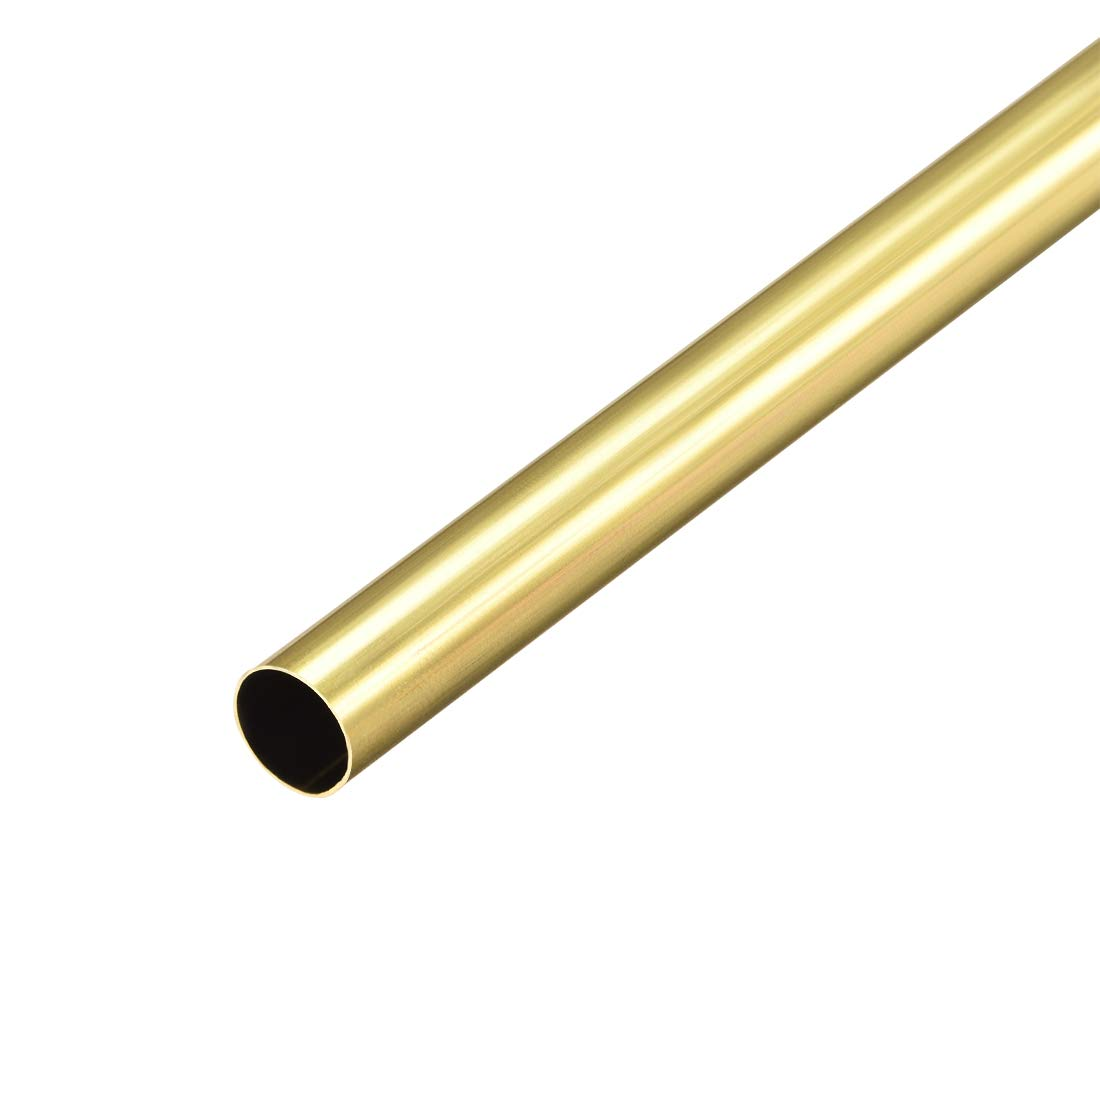 uxcell Brass Round Tube, 300mm Length 7.5mm OD 0.2mm Wall Thickness, Seamless Straight Pipe Tubing